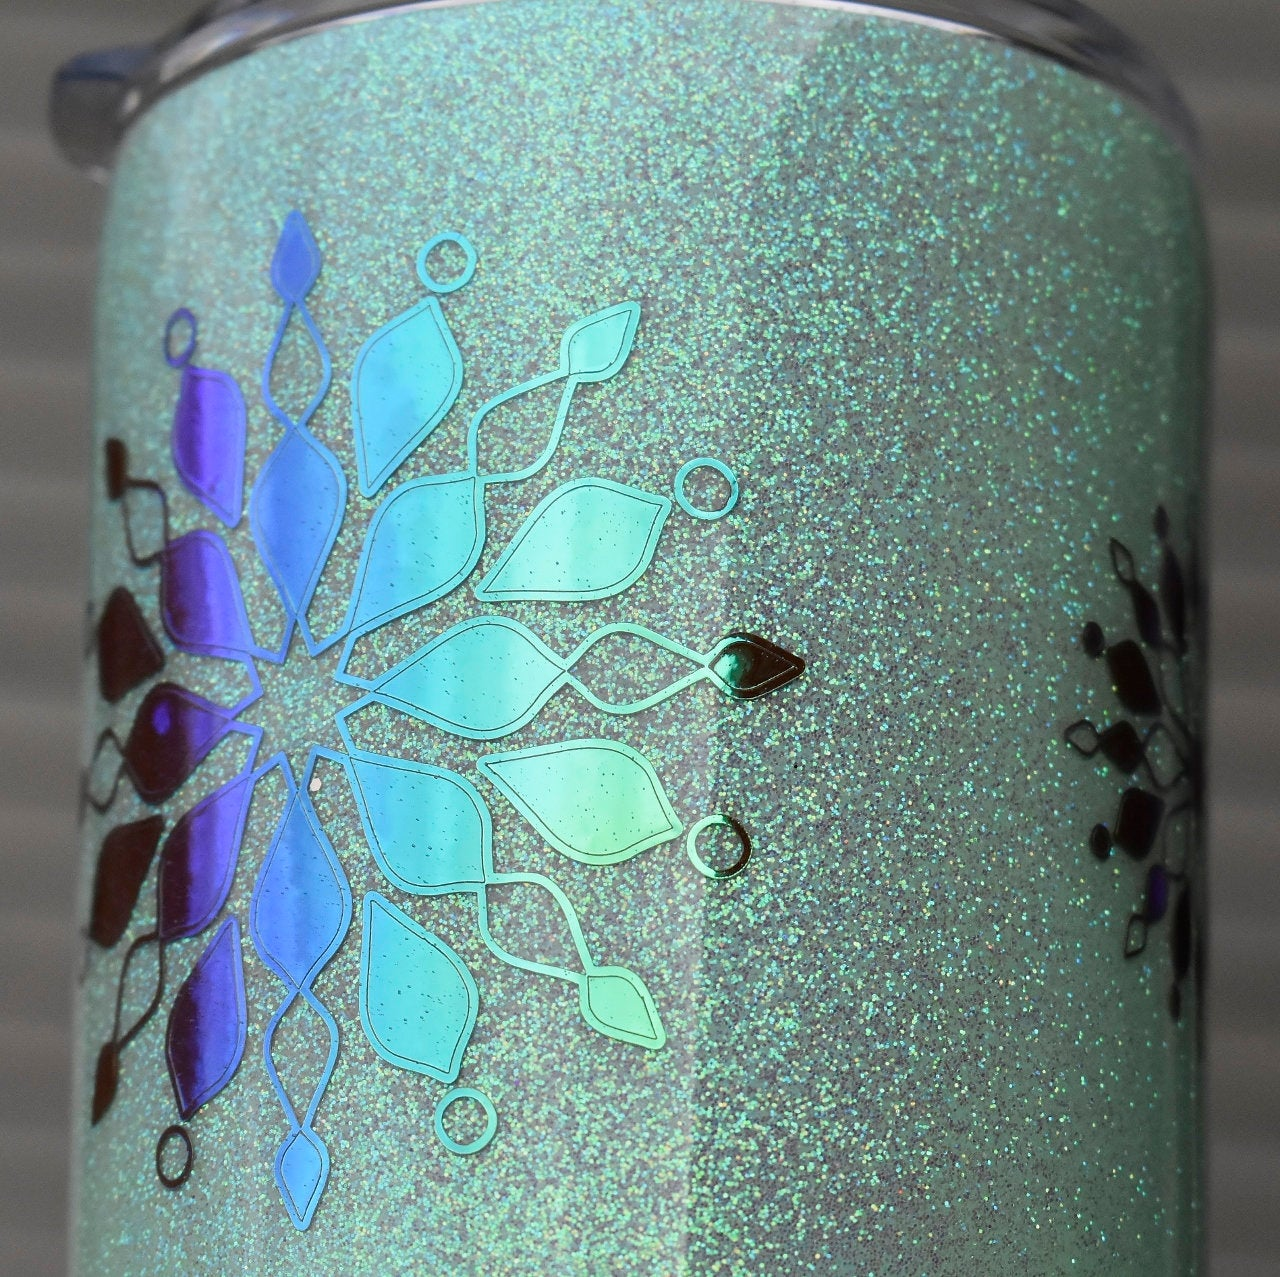 RTS Mandala Mint Ombre Holographic Glitter Tumbler | Gift for Her | Unique Gift | Mandala Design Tumbler